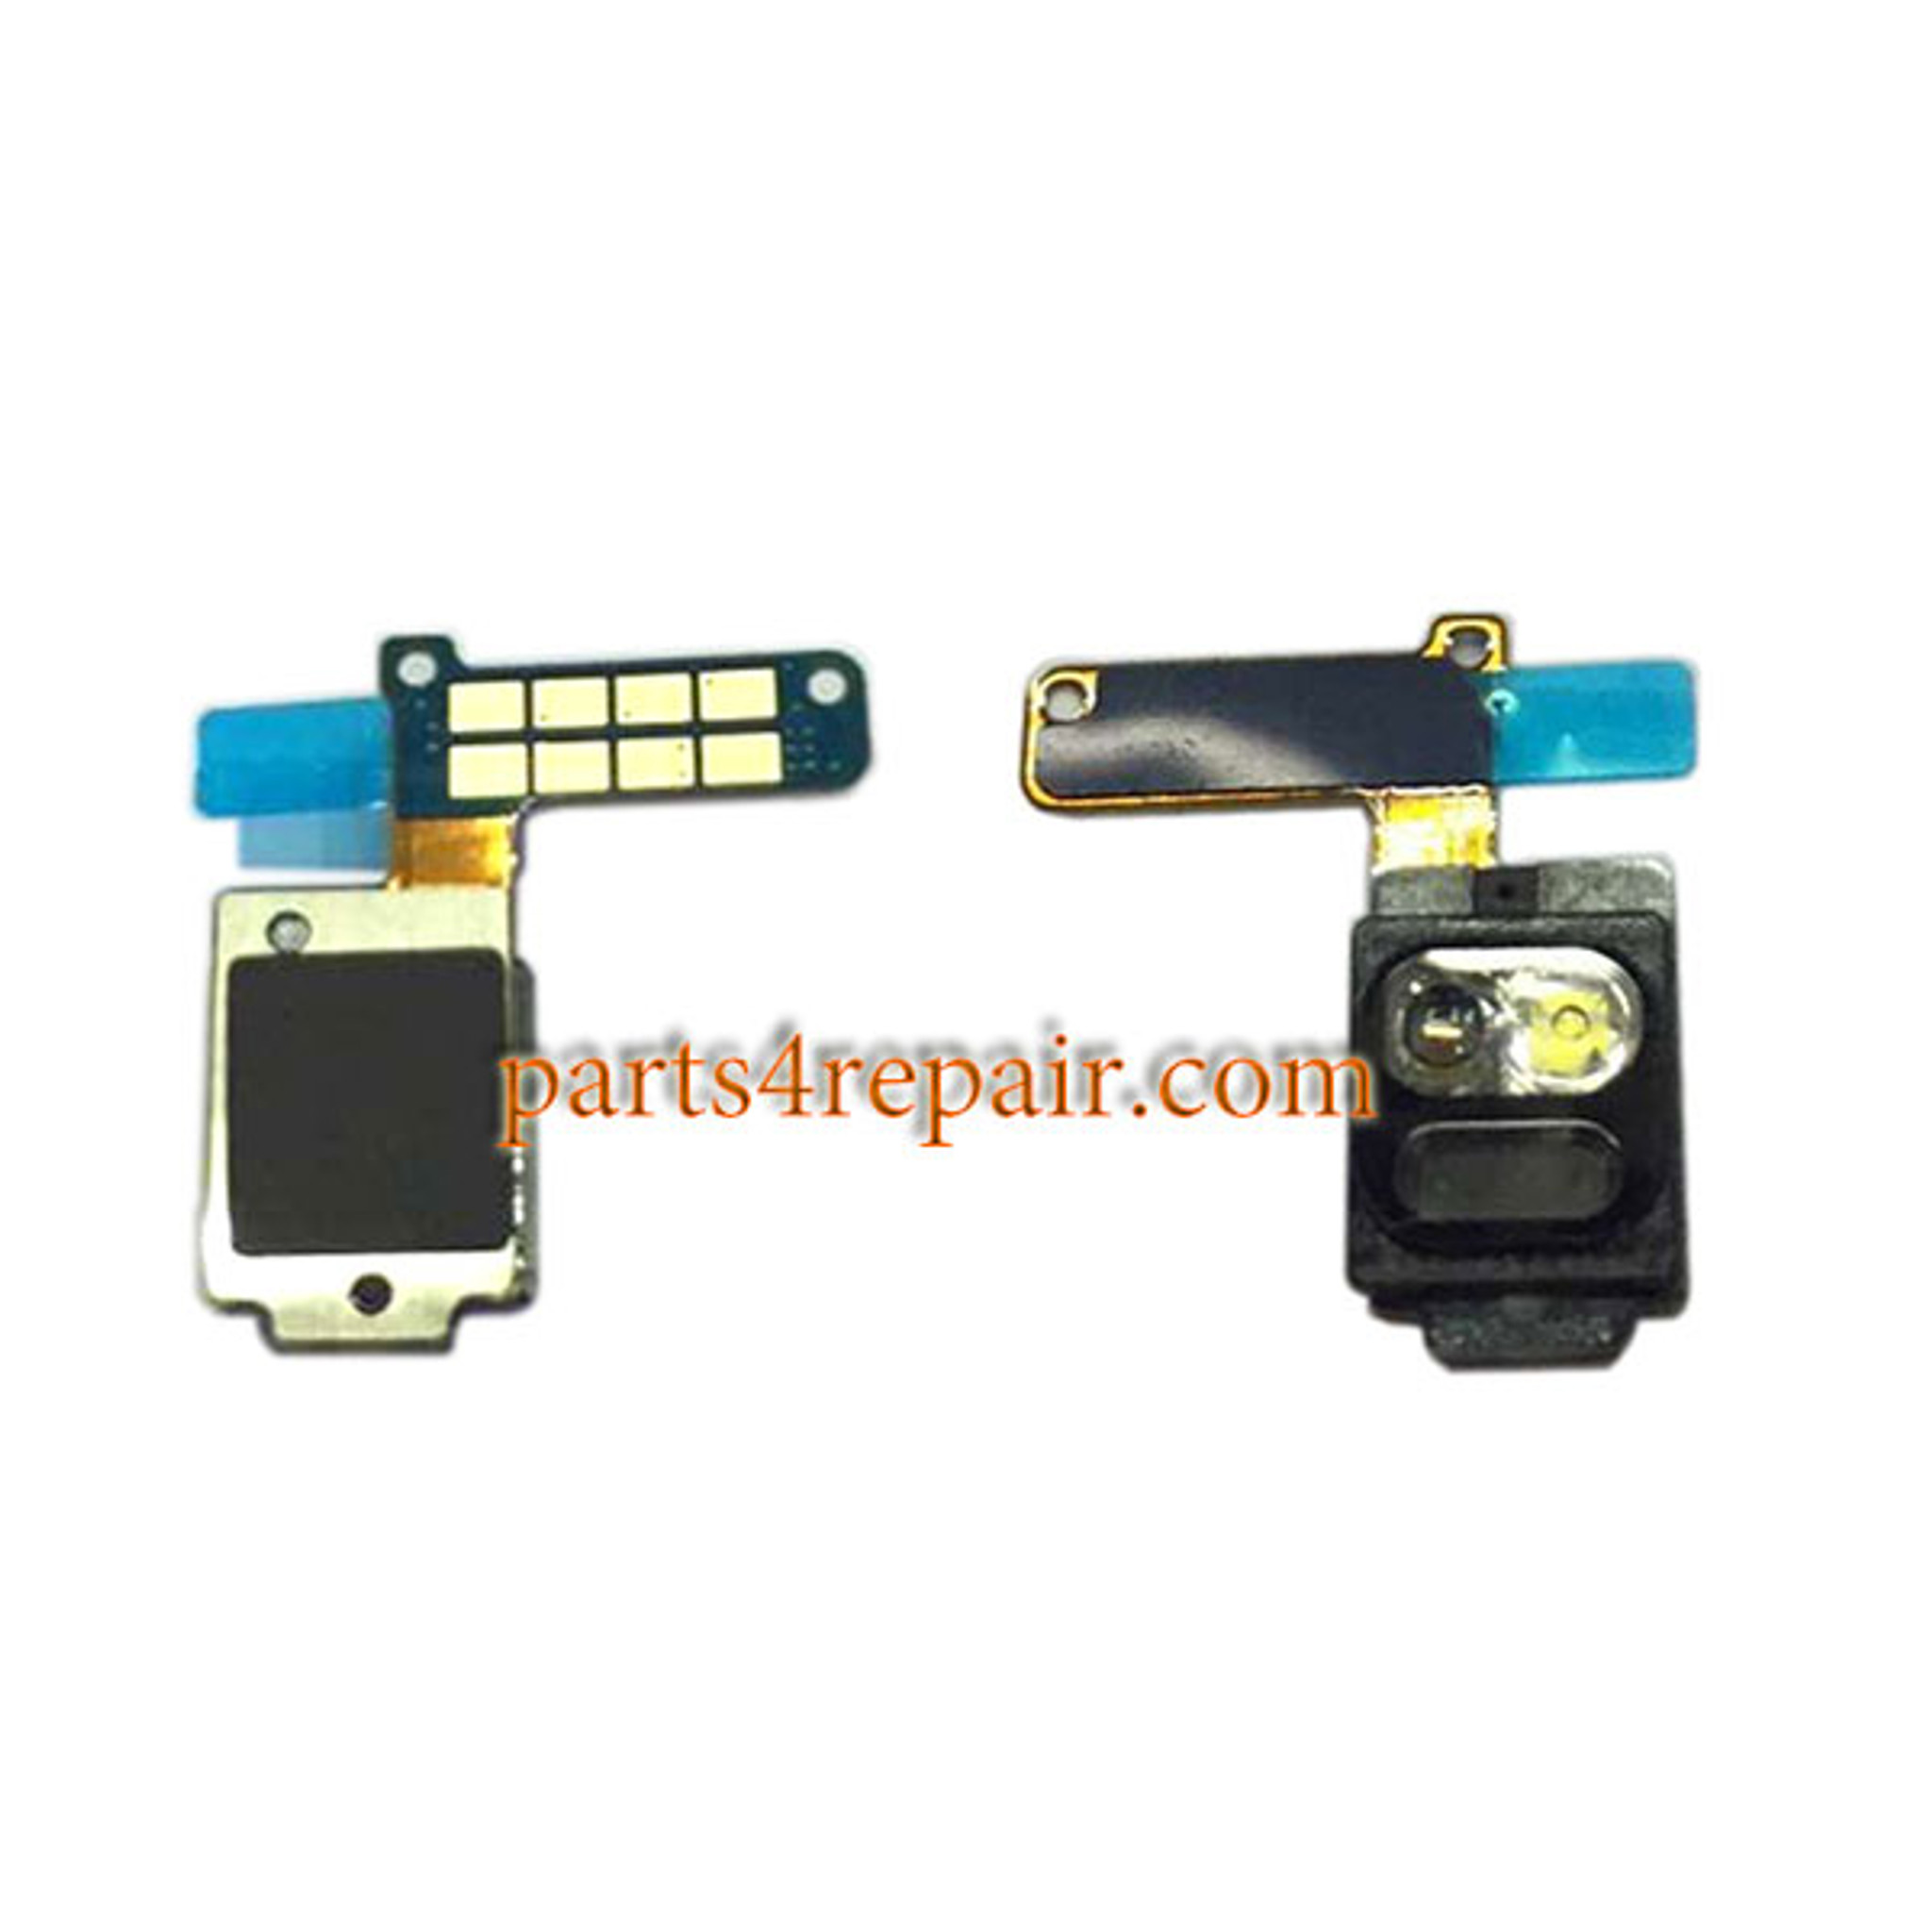 Proximity Sensor Flex Cable for LG G5 All Versions